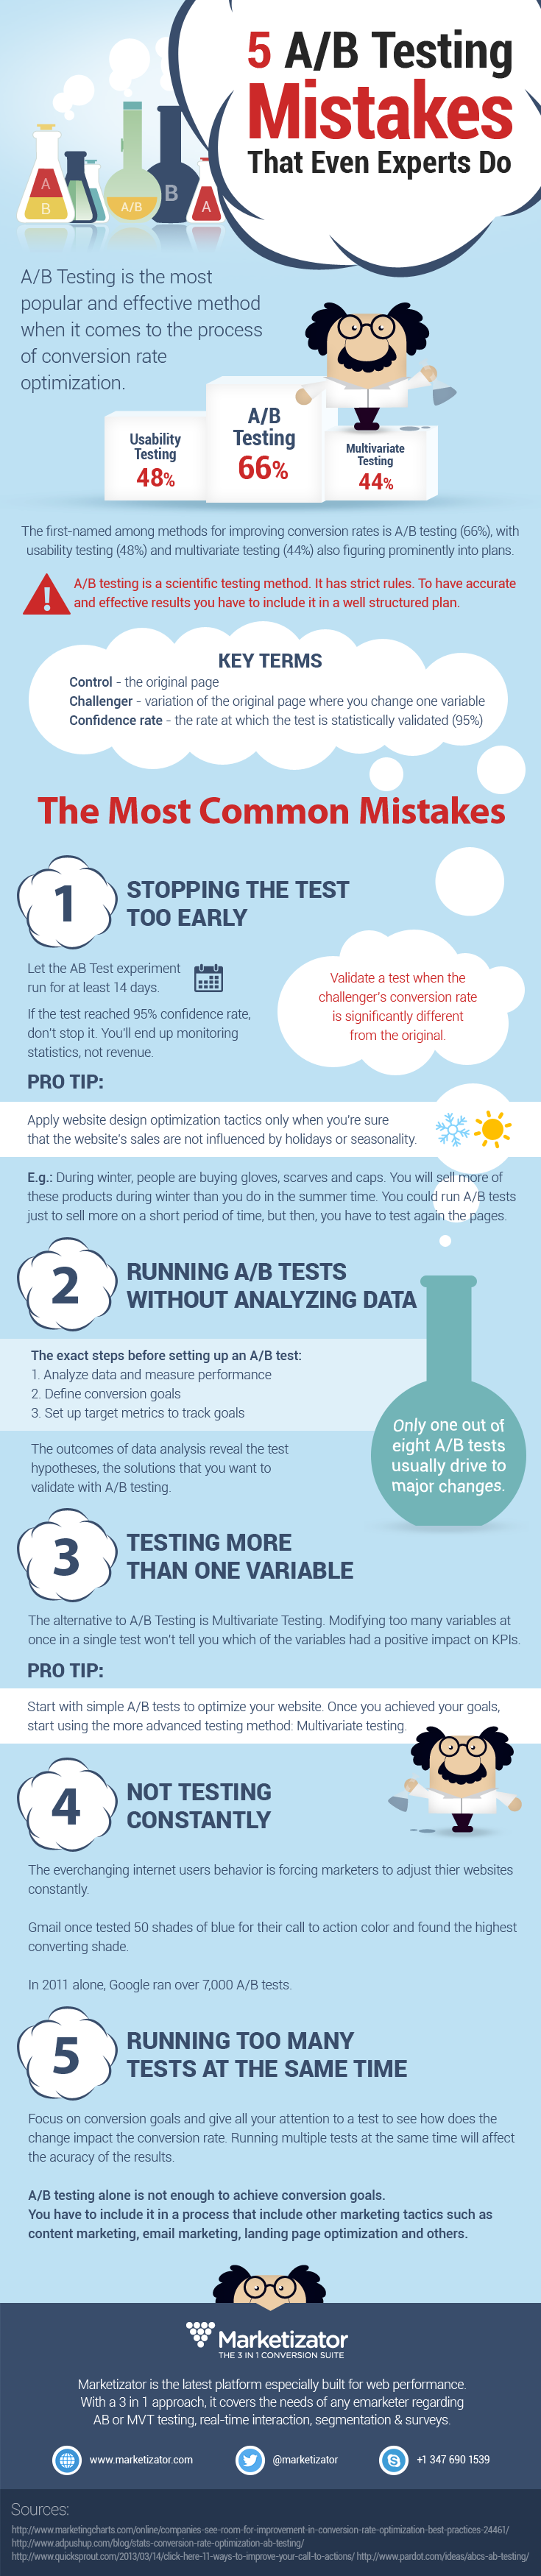 Infographic: 5 A/B Testing Mistakes That Even Experts Do